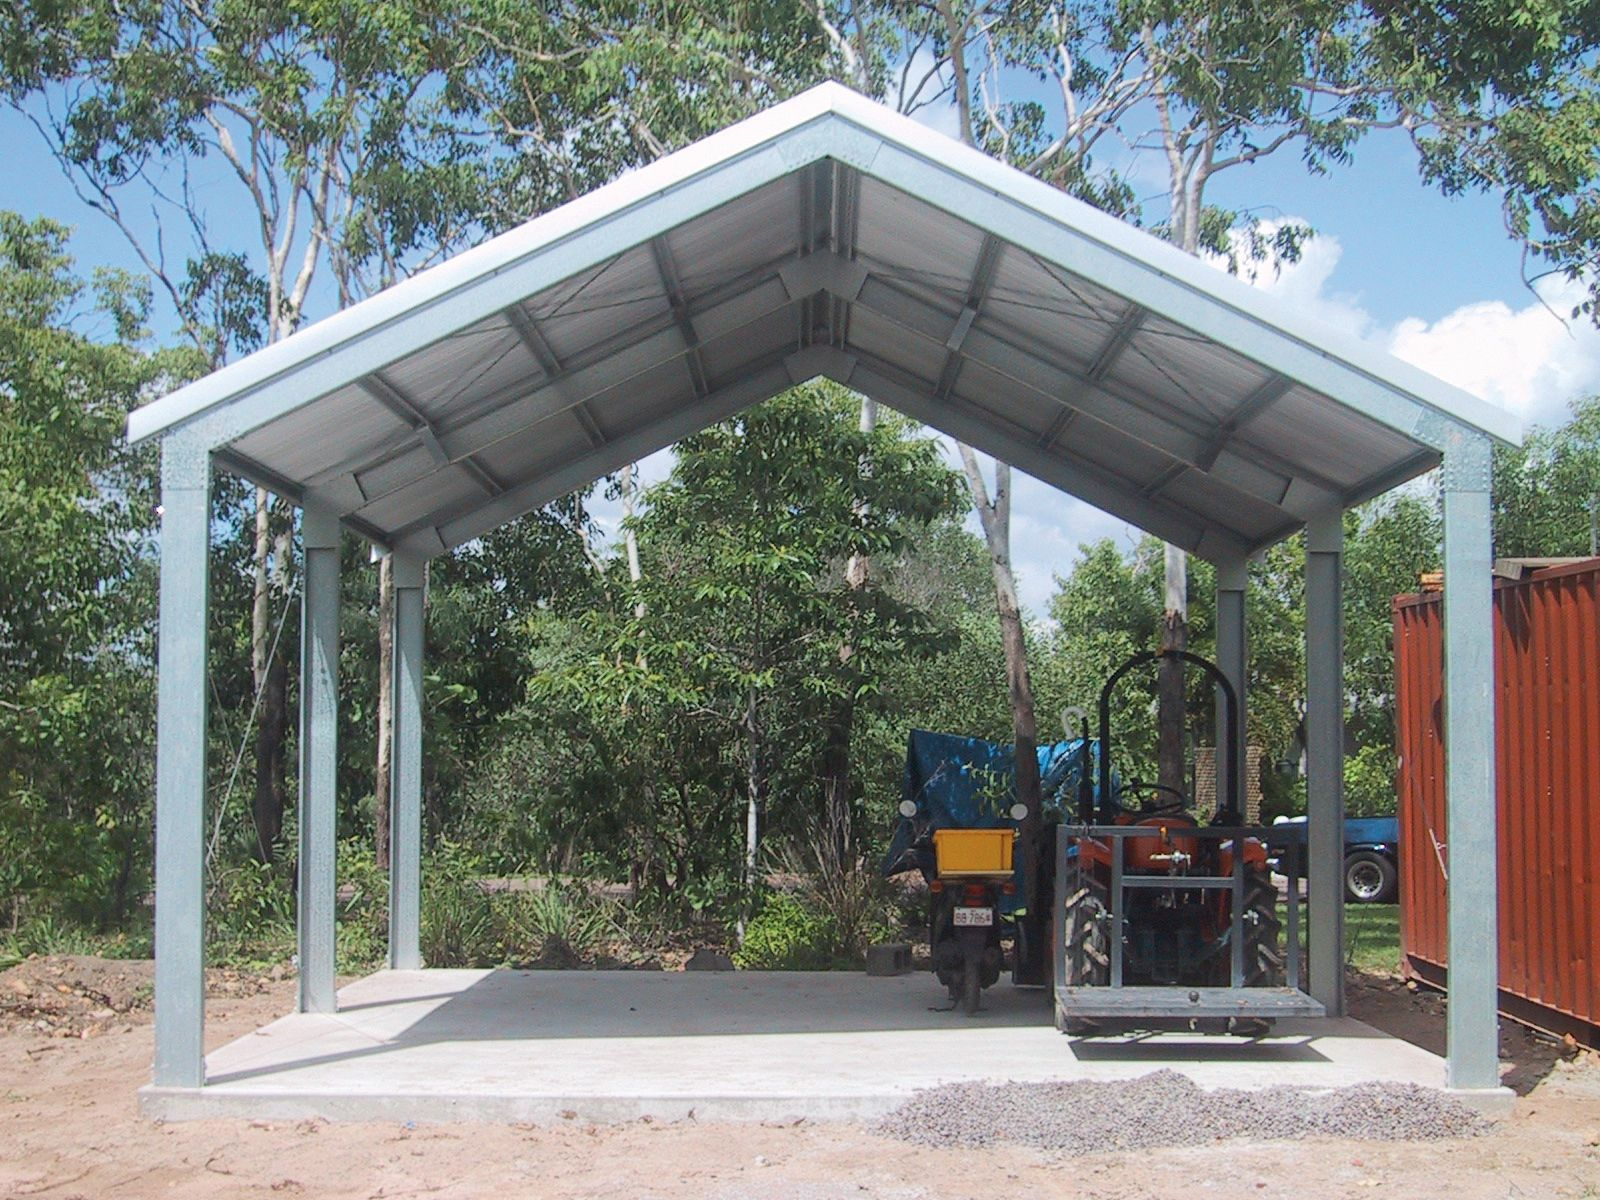 Best A High Pitch Roof On A Carport Is Desirable When Matching 400 x 300